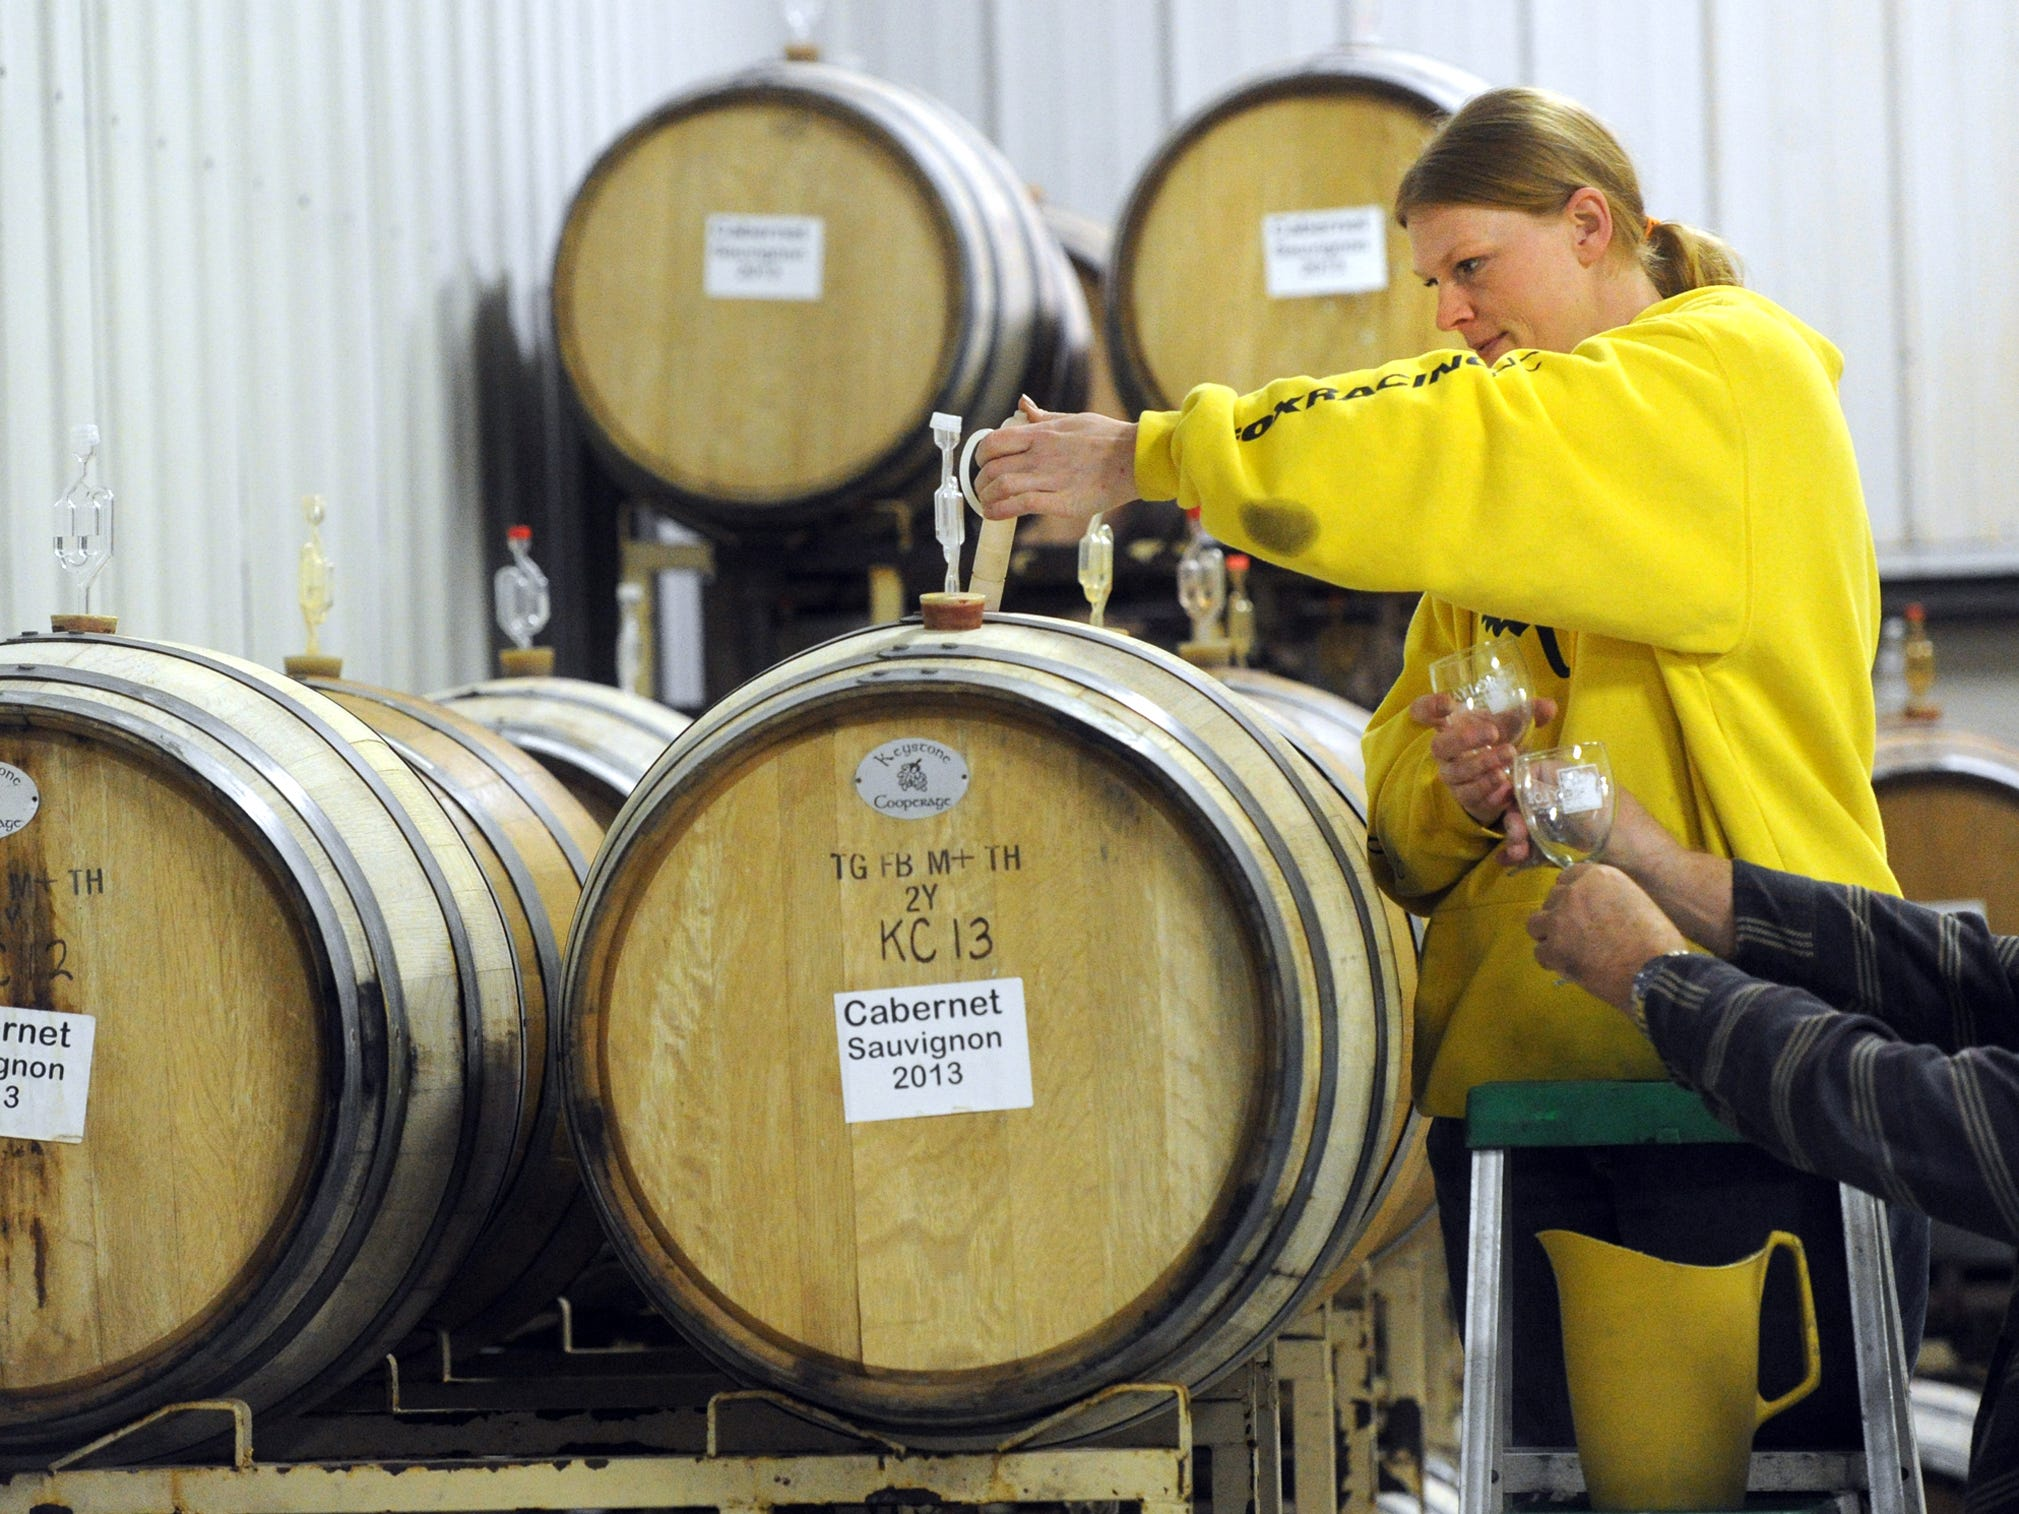 Angel Kellison, the lab technician with Naylor Wine Cellars, samples a barrel of wine with a wine thief in the Stewartstown business on Thursday, Feb. 20, 2014.